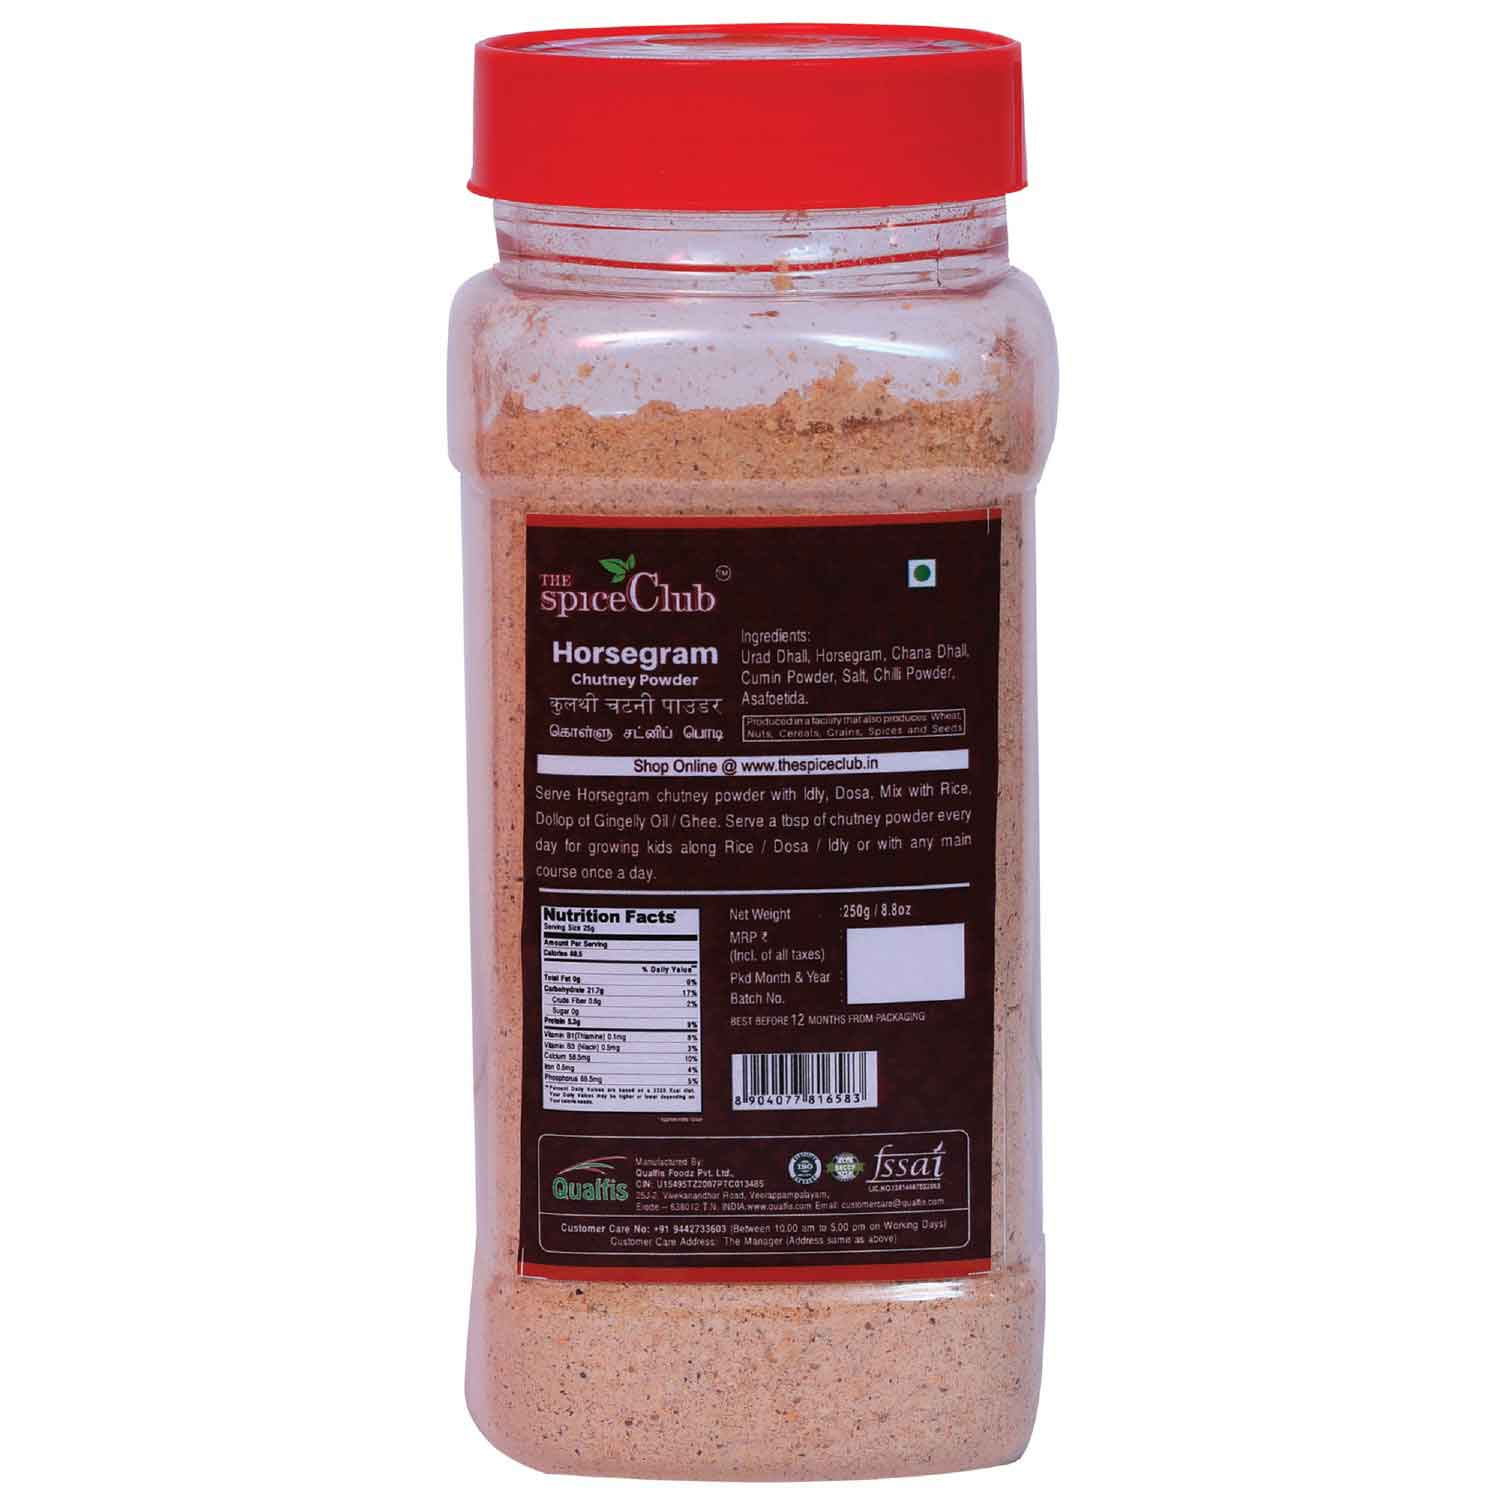 Horsegram Chutney Powder